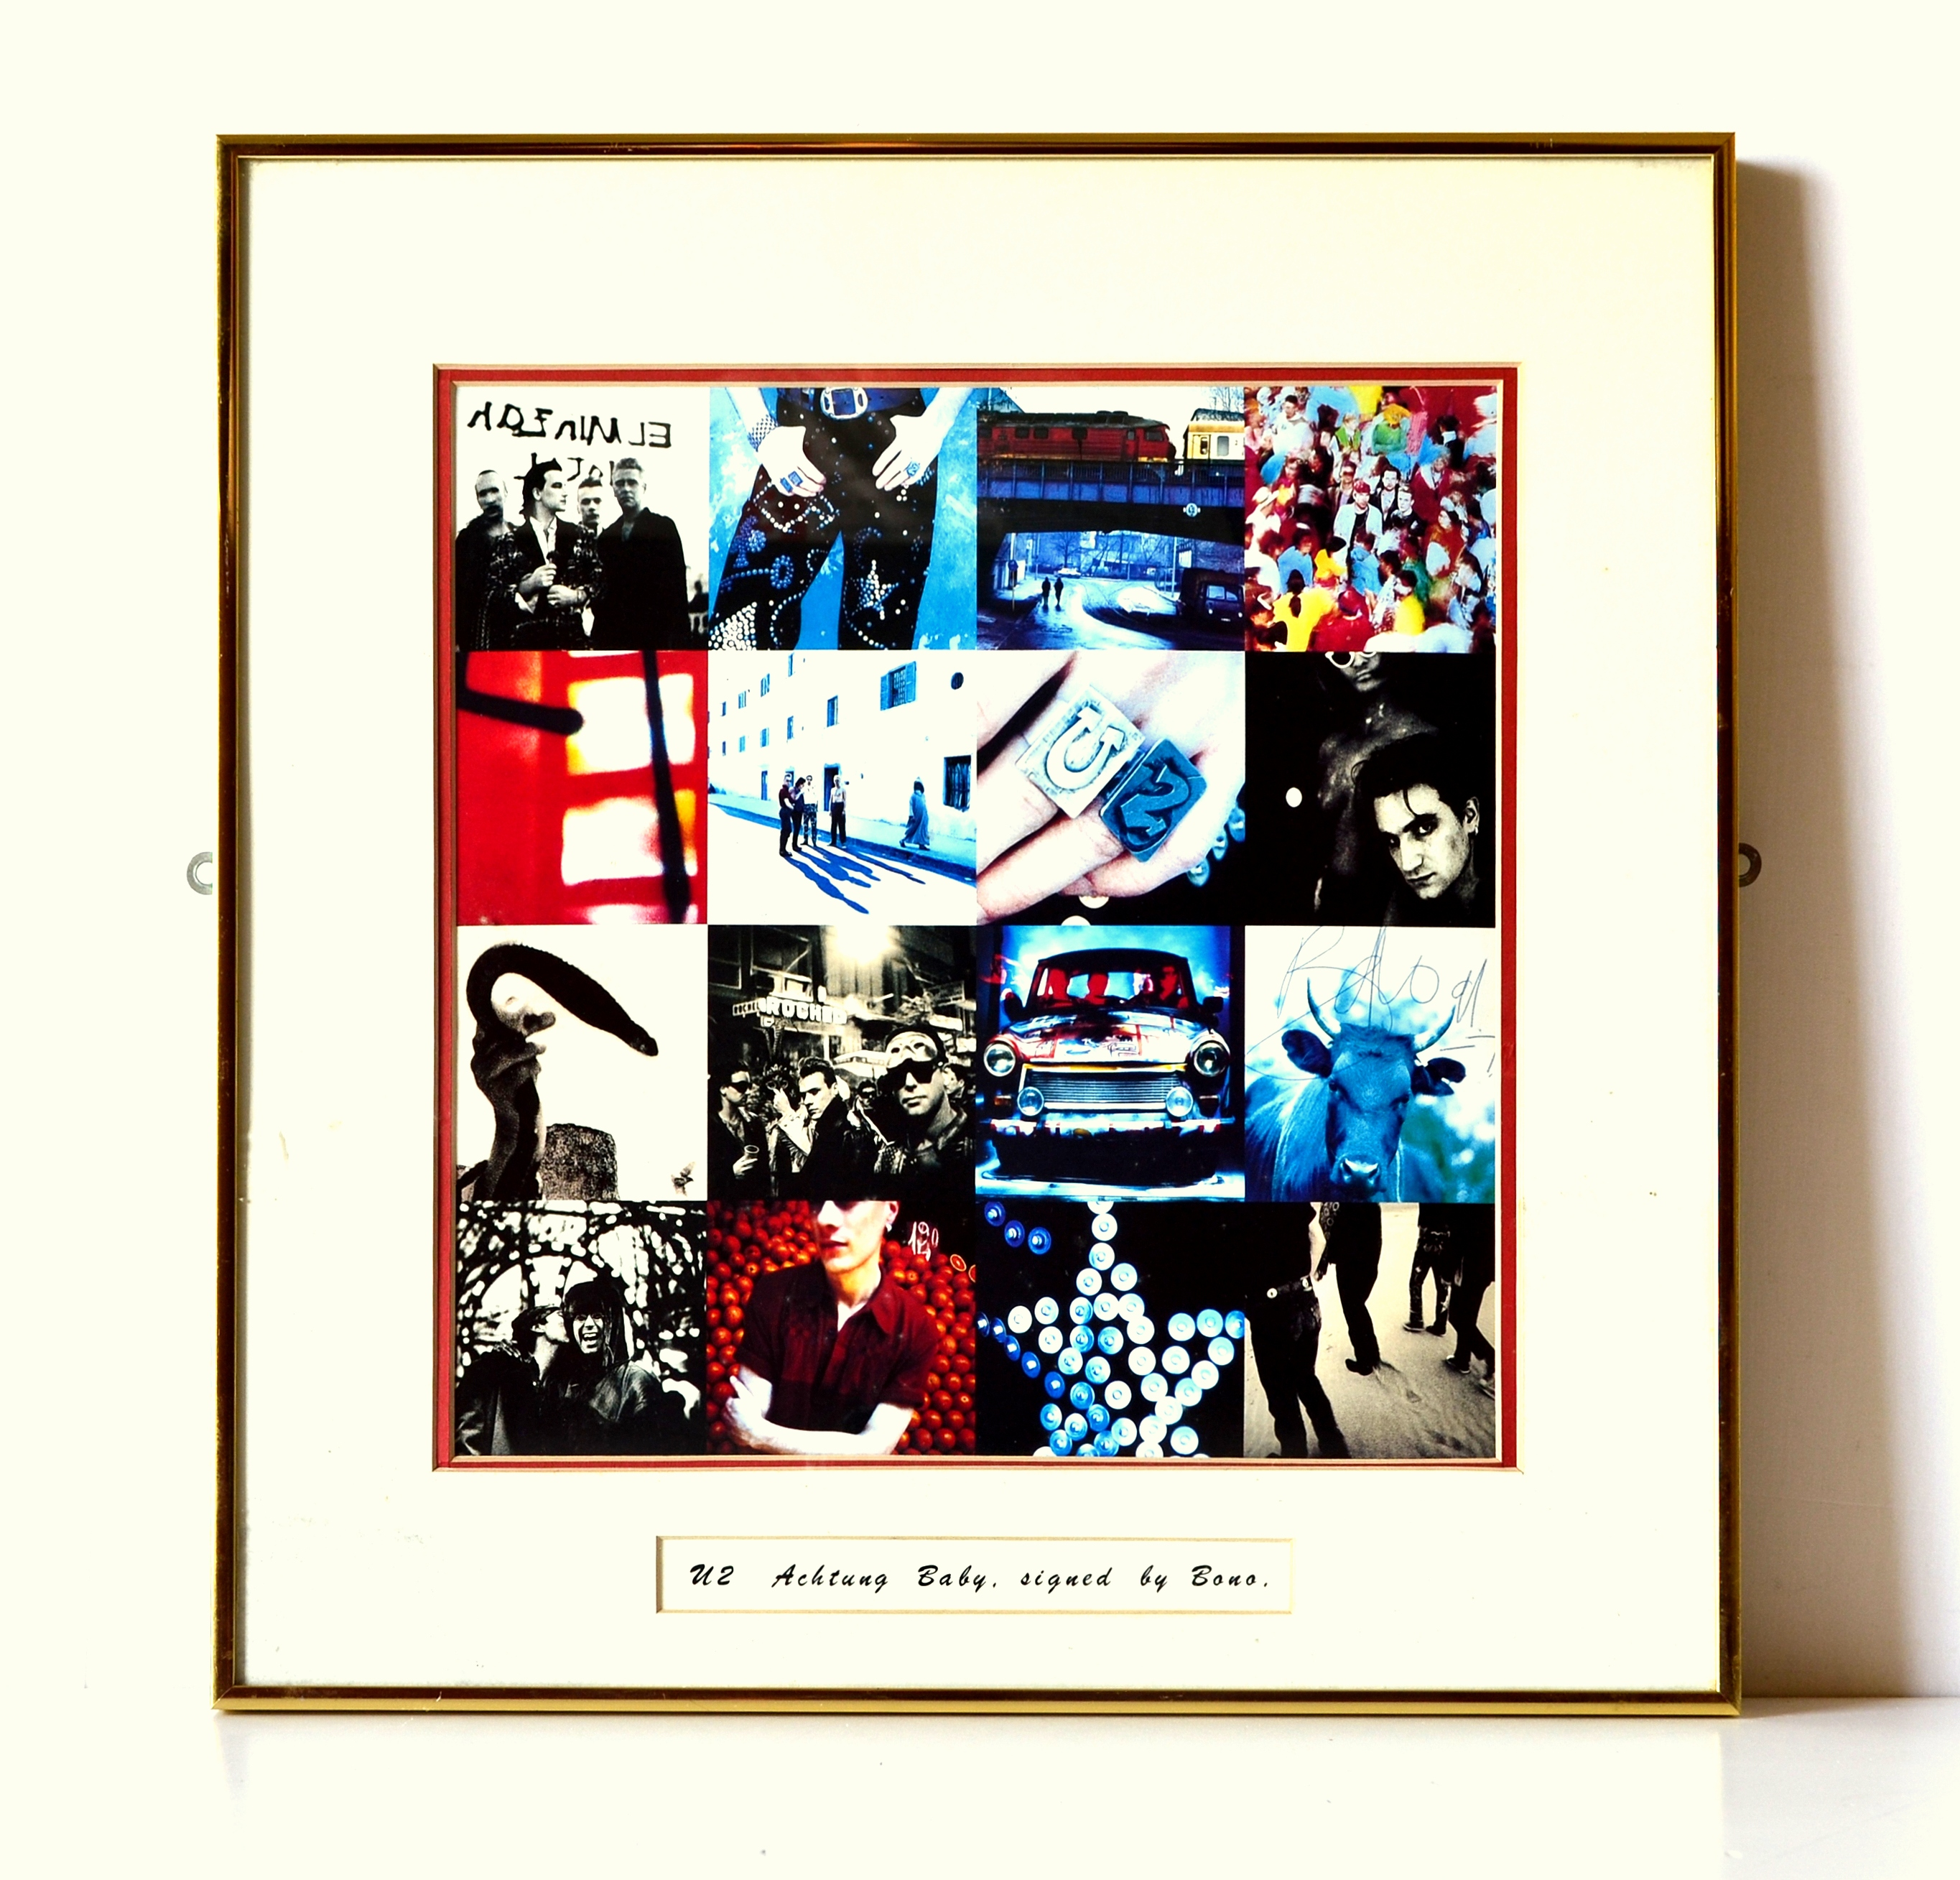 Achtung Baby signed by Bono